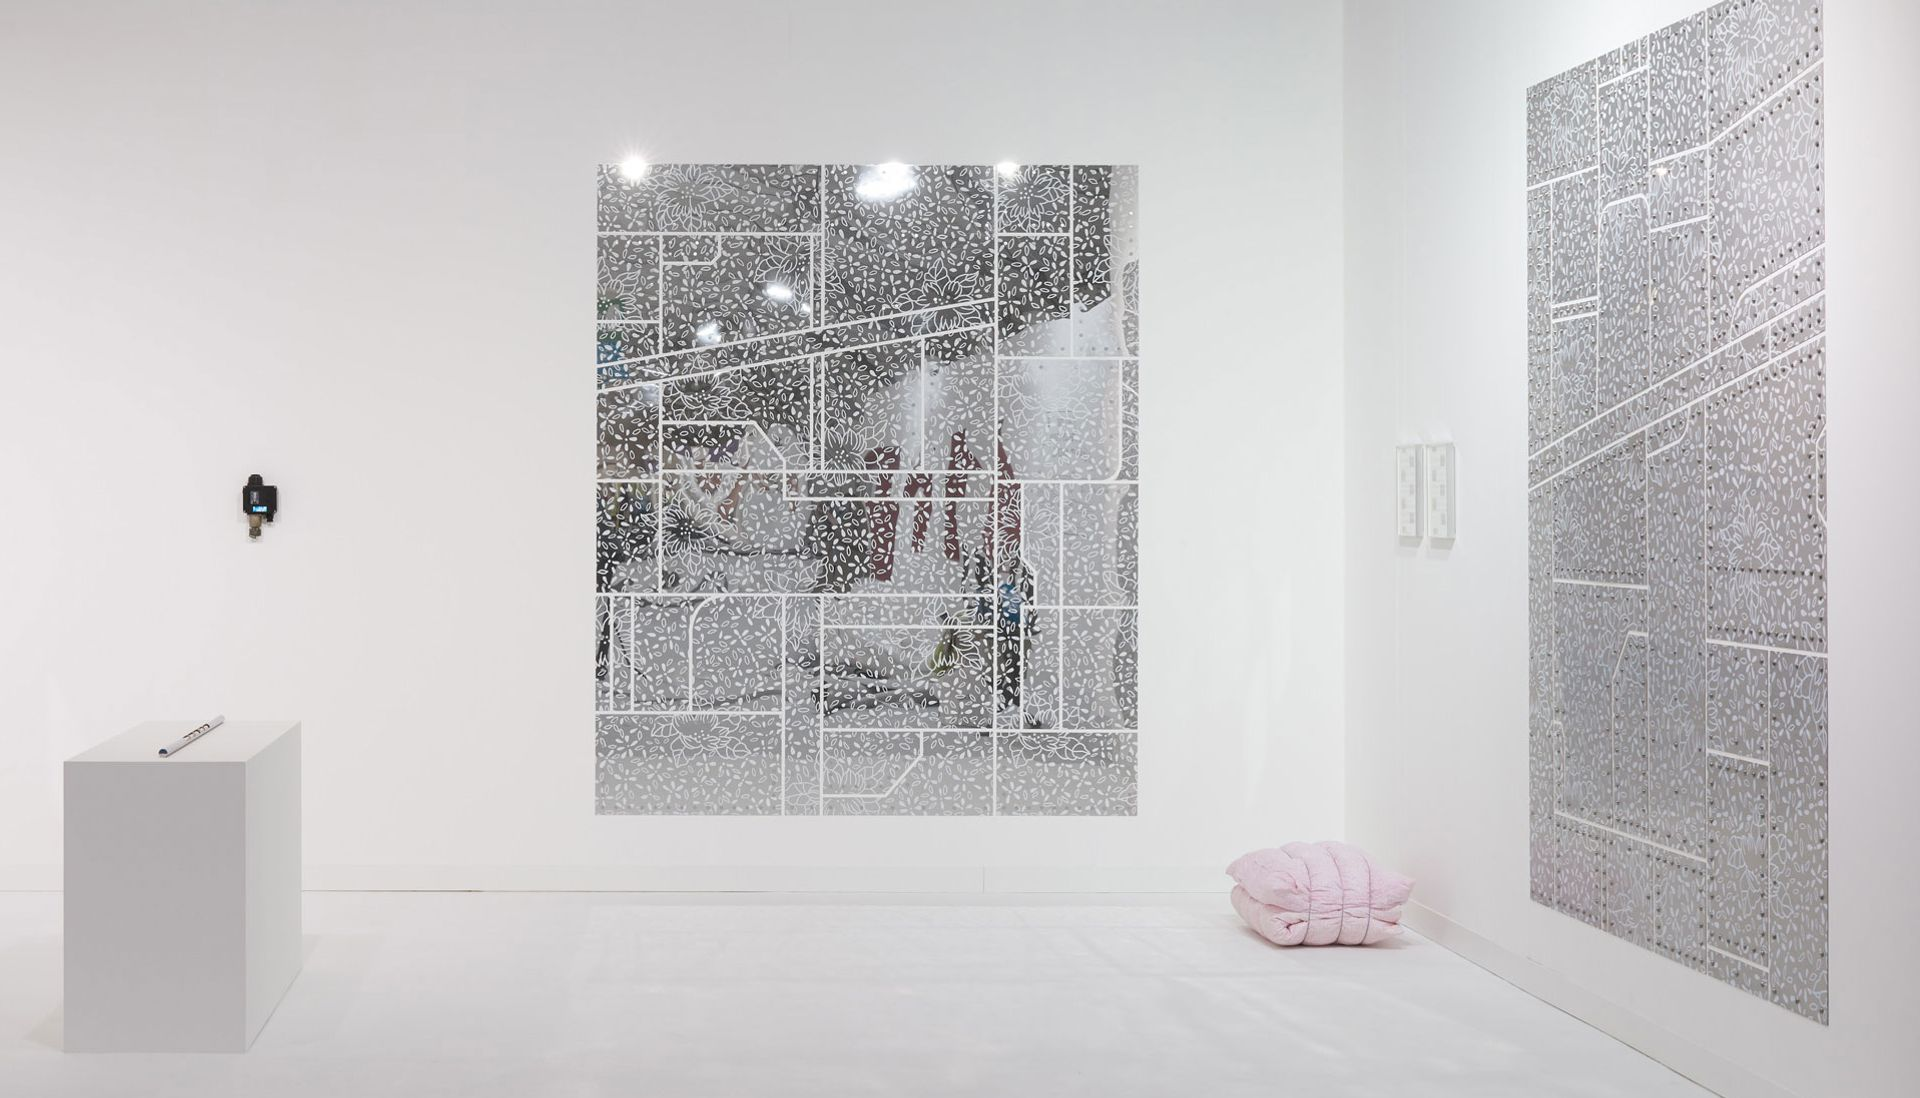 Works by Sung Tieu at the Emalin gallery stand of Frieze London Photo: Theo Christelis